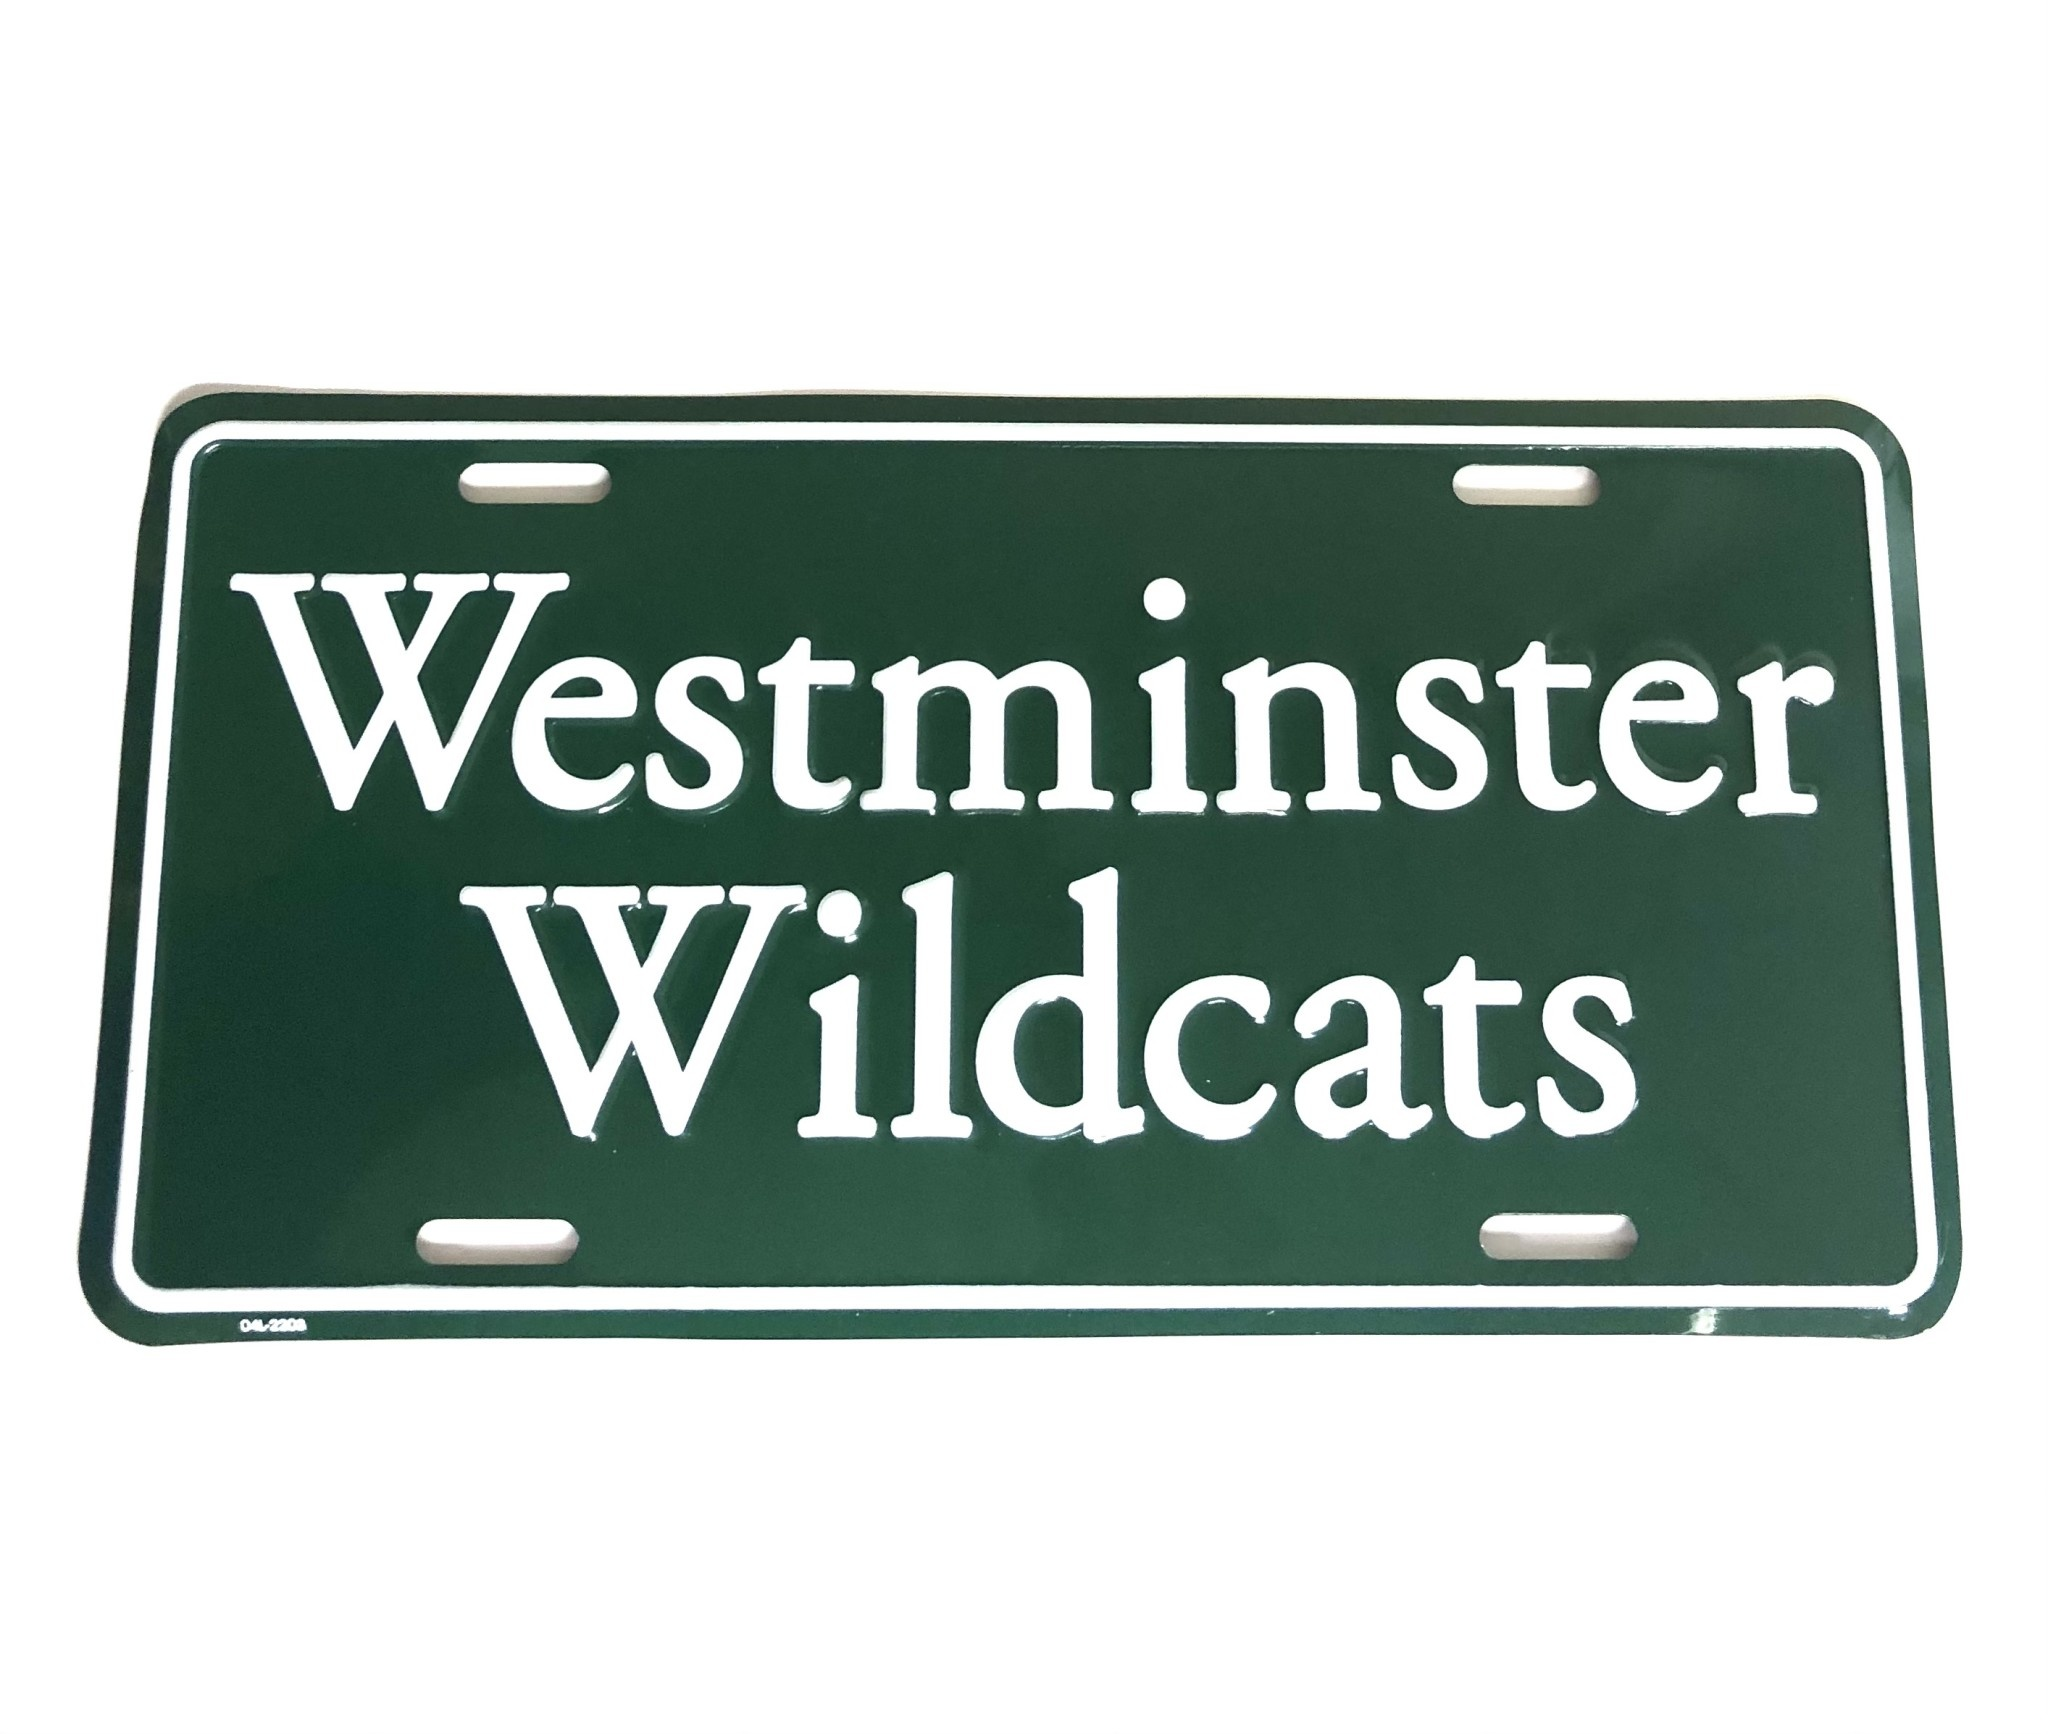 License: Westminster Green Plate